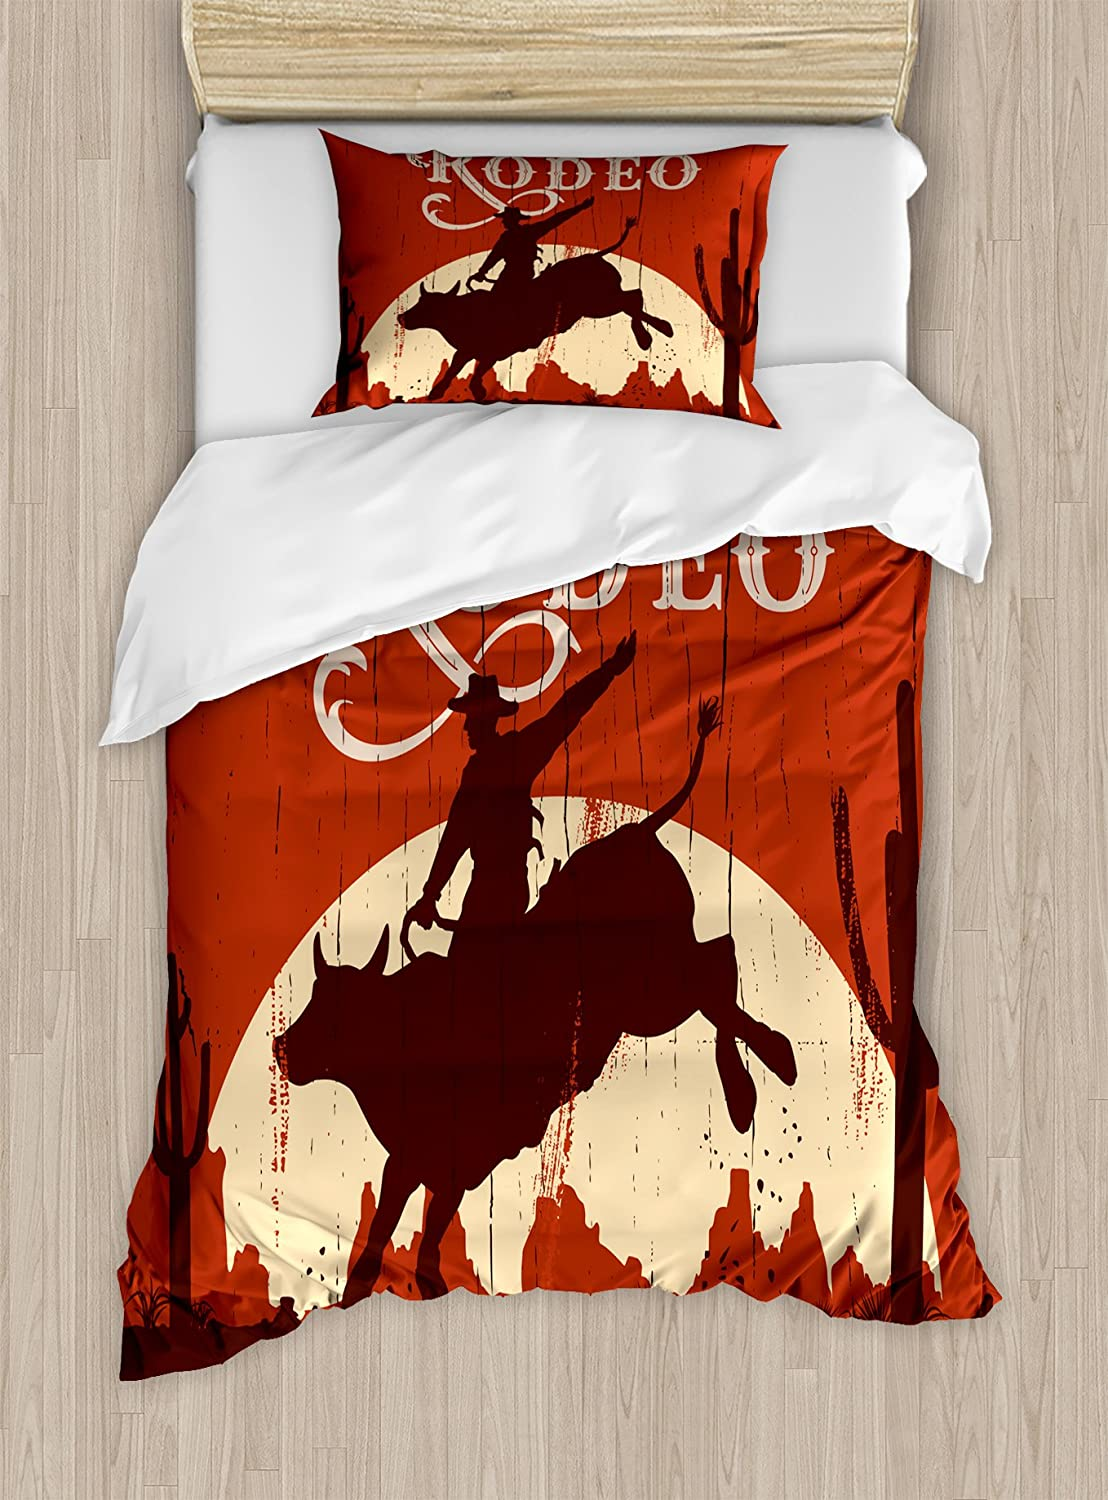 Ambesonne Vintage Duvet Cover Set Twin Size, Rodeo Cowboy Riding Bull Wooden Old Sign Western Style Wilderness at Sunset Image, Decorative 2 Piece Bedding Set with 1 Pillow Sham, Orange Brown